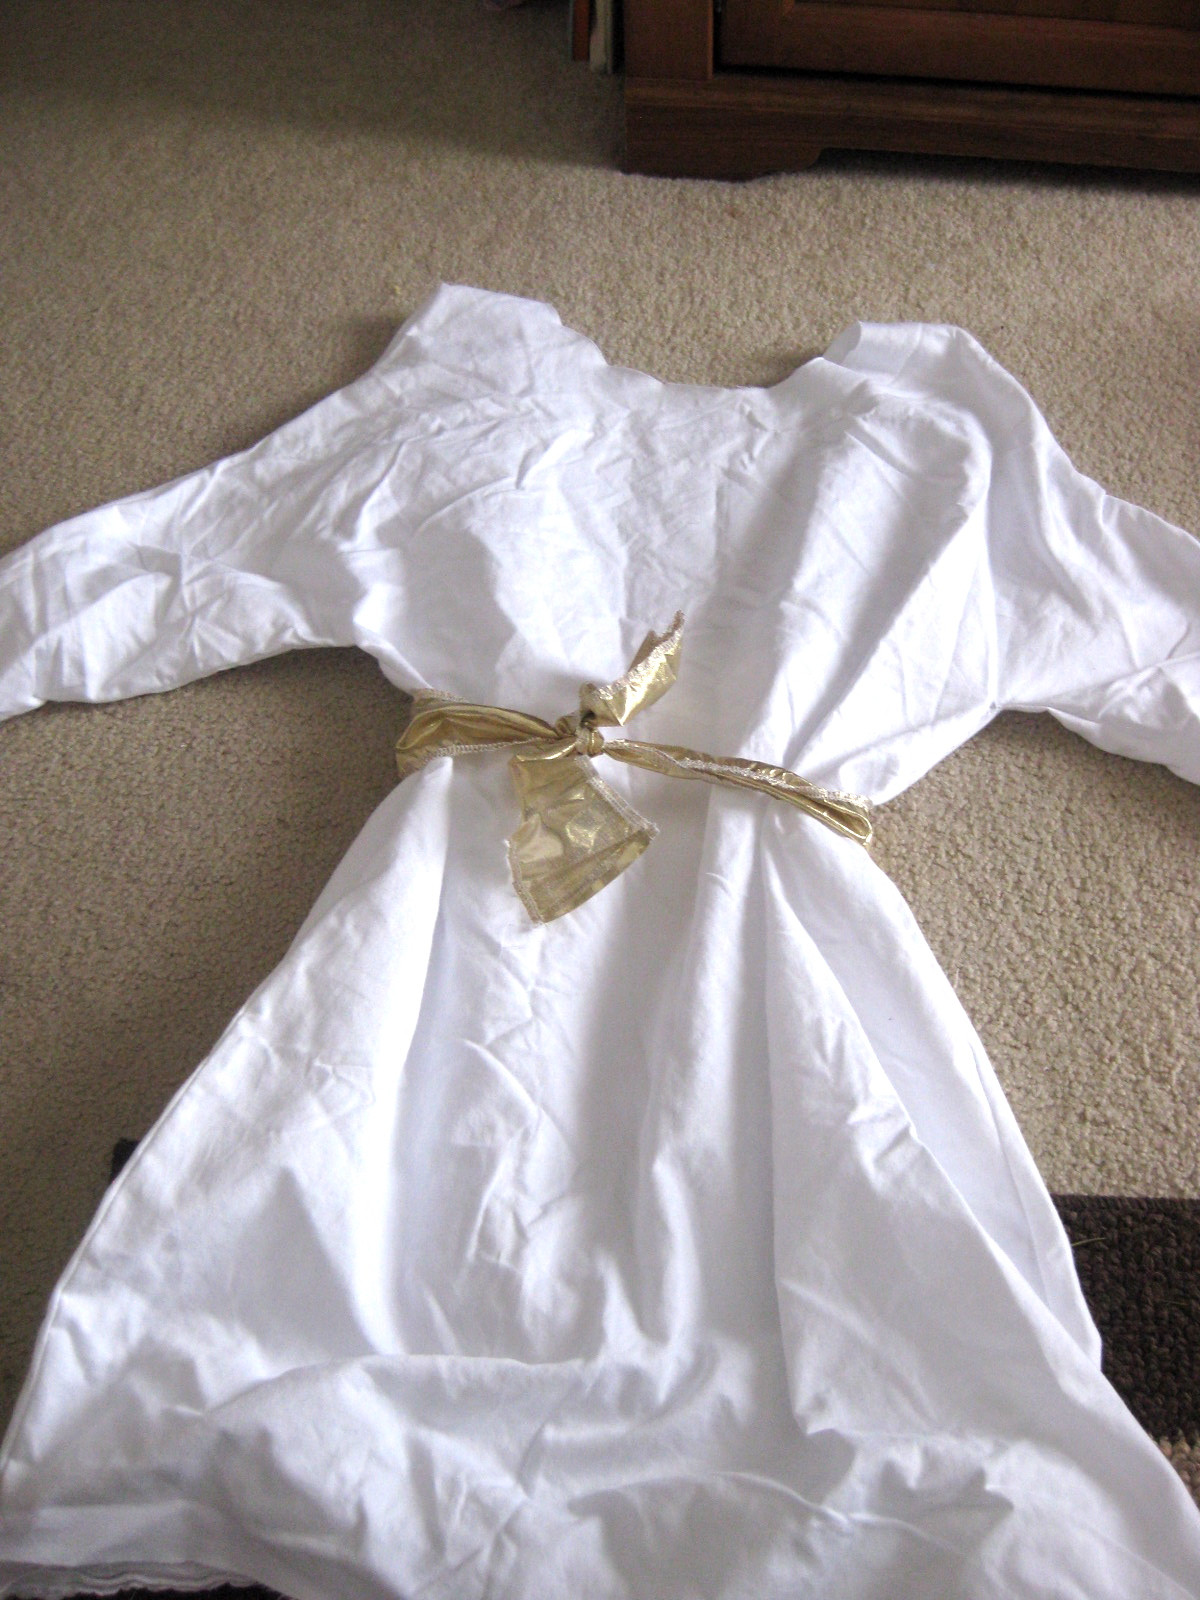 Best ideas about DIY Angel Costume . Save or Pin This Little Project DIY Nativity Costumes DONKEY and CAMEL Now.